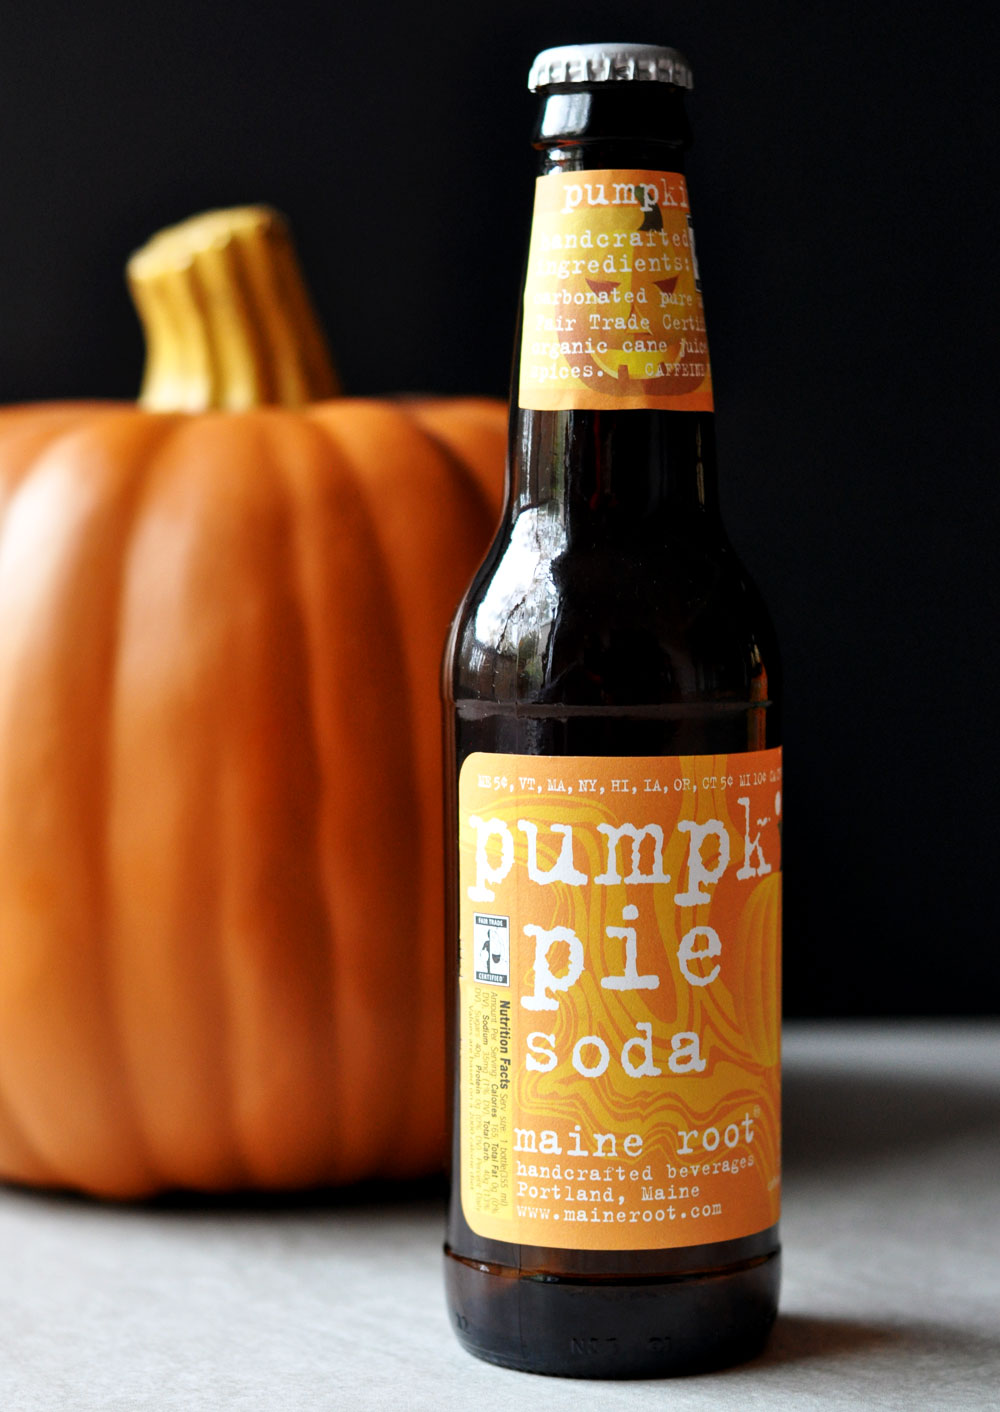 Maine Root Pumpkin Pie Soda - The perfect Fall drink